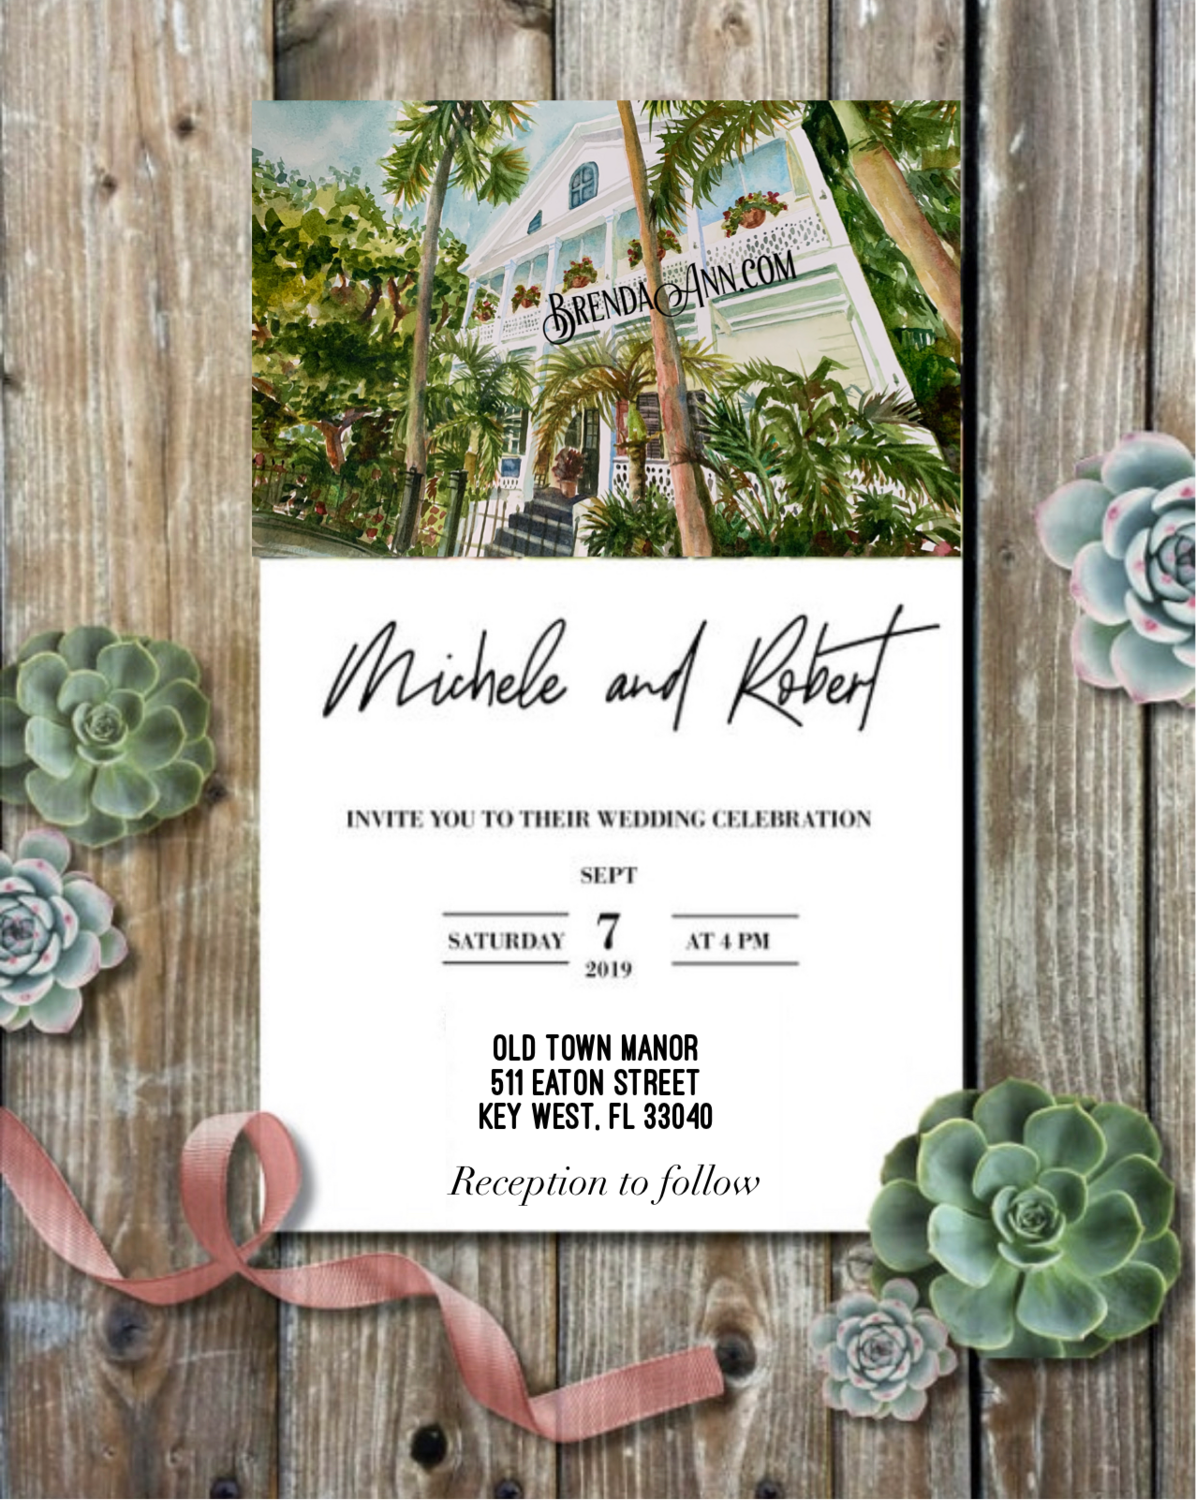 Old Town Manor in Key West, FL - Wedding Invitations on Luxurious Paper with Envelopes - Set of 25 - Watercolor Invitation